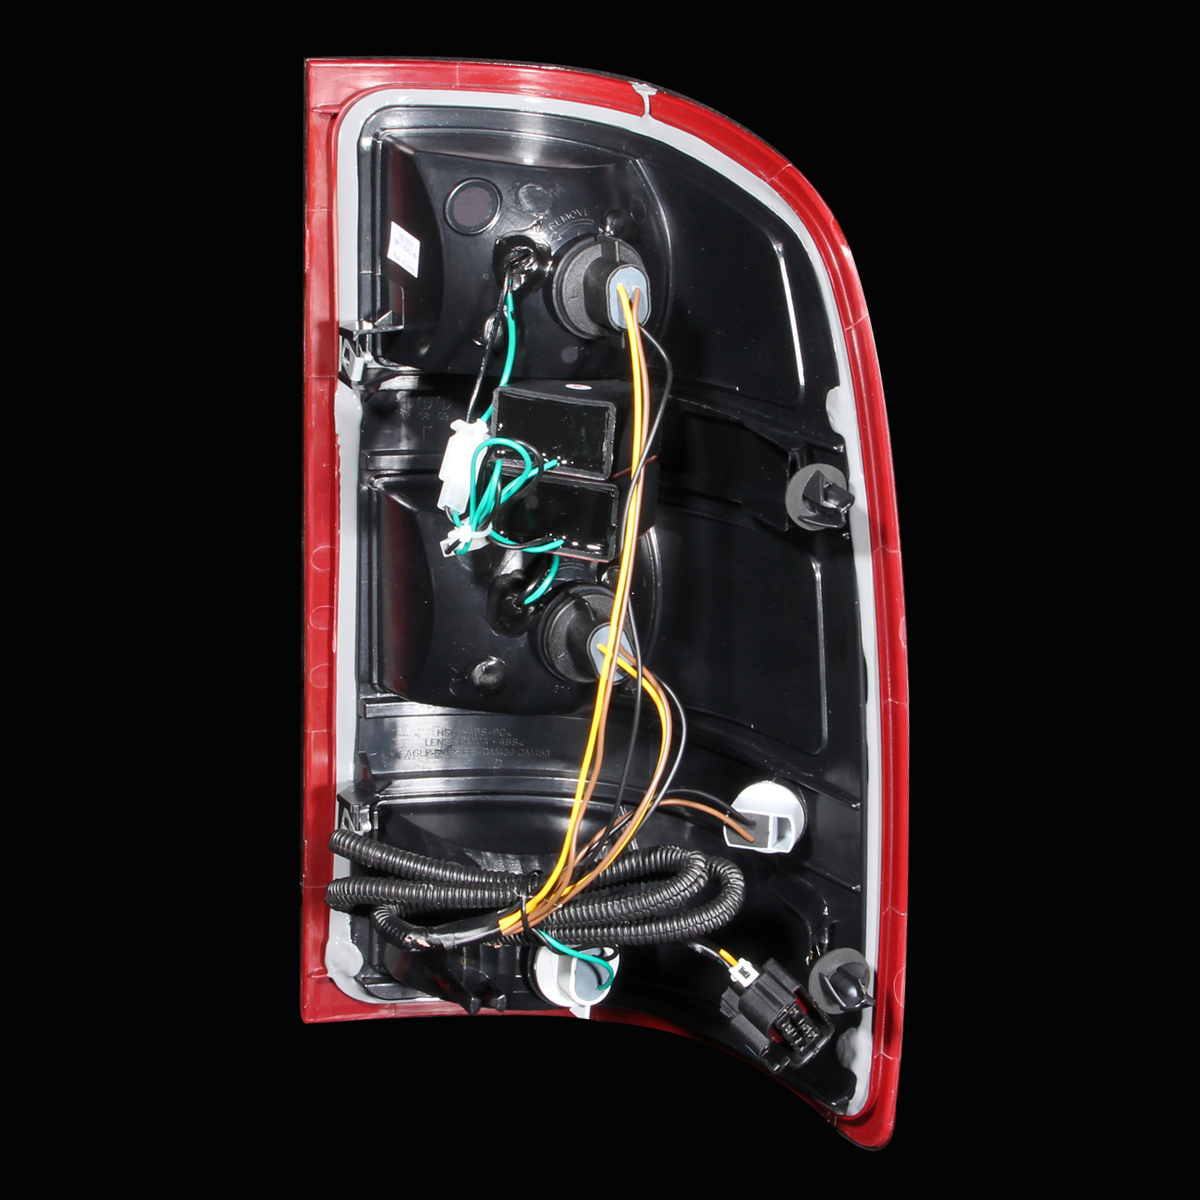 gmc 2009 2500 tail light wiring gmc 09 2500 tail light wiring